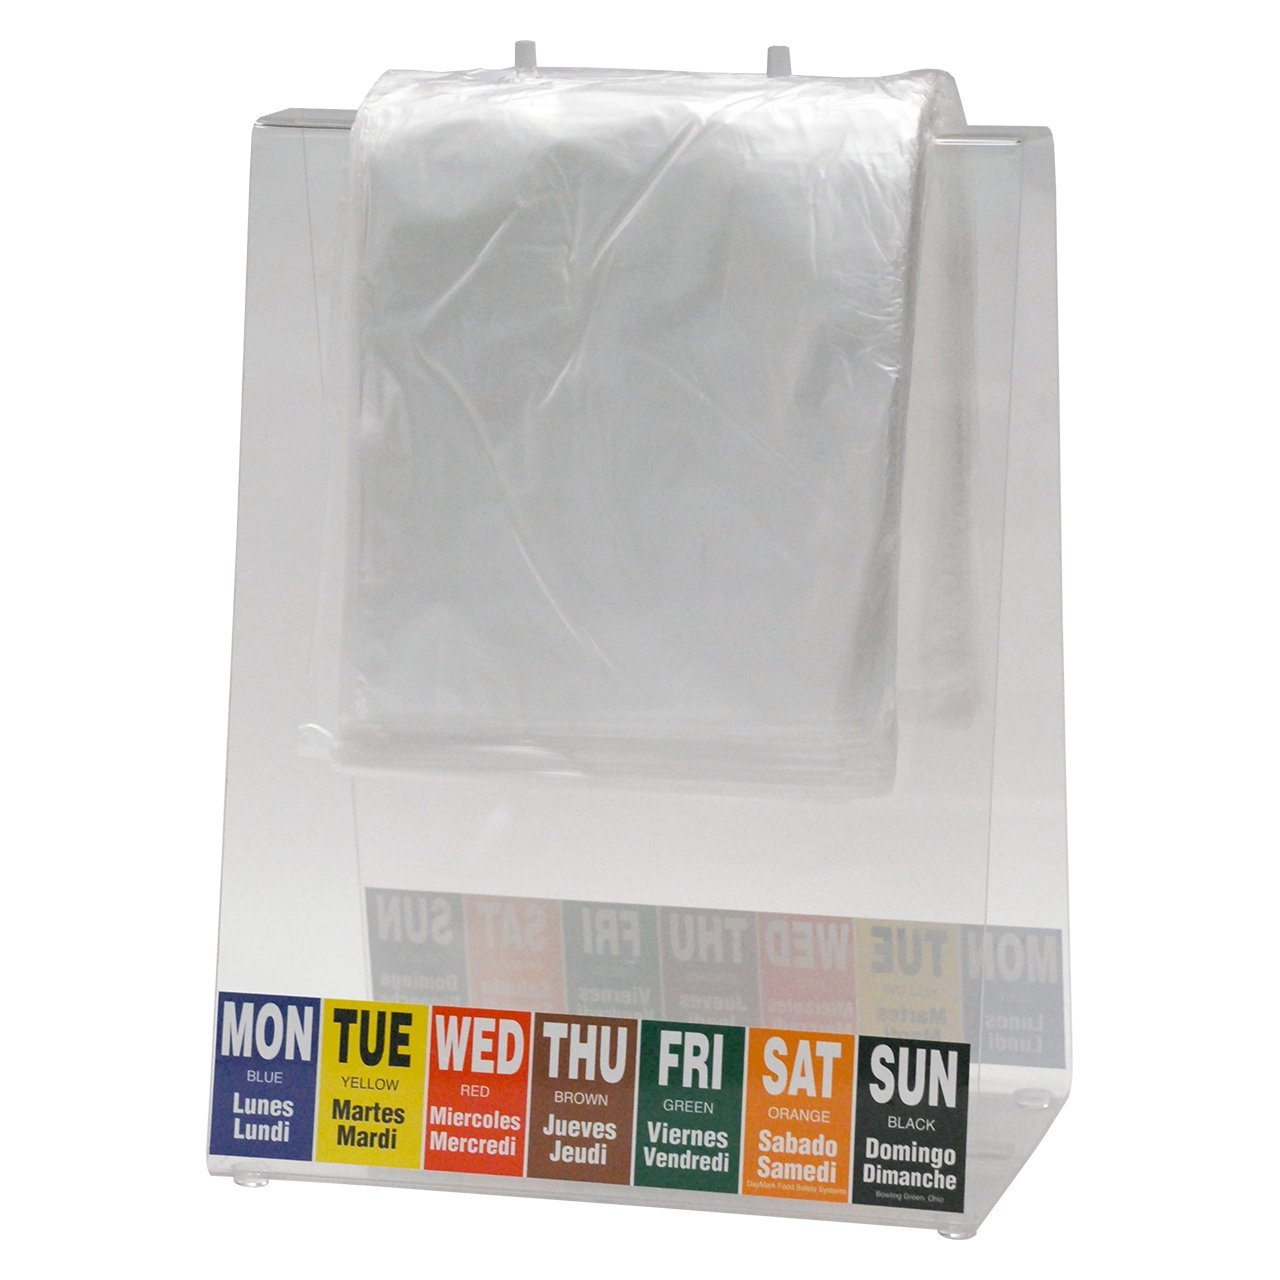 DayMark 6.5'' x 7'' Clear Portion Bag (2,000 per Box) by DayMark Safety Systems (Image #2)